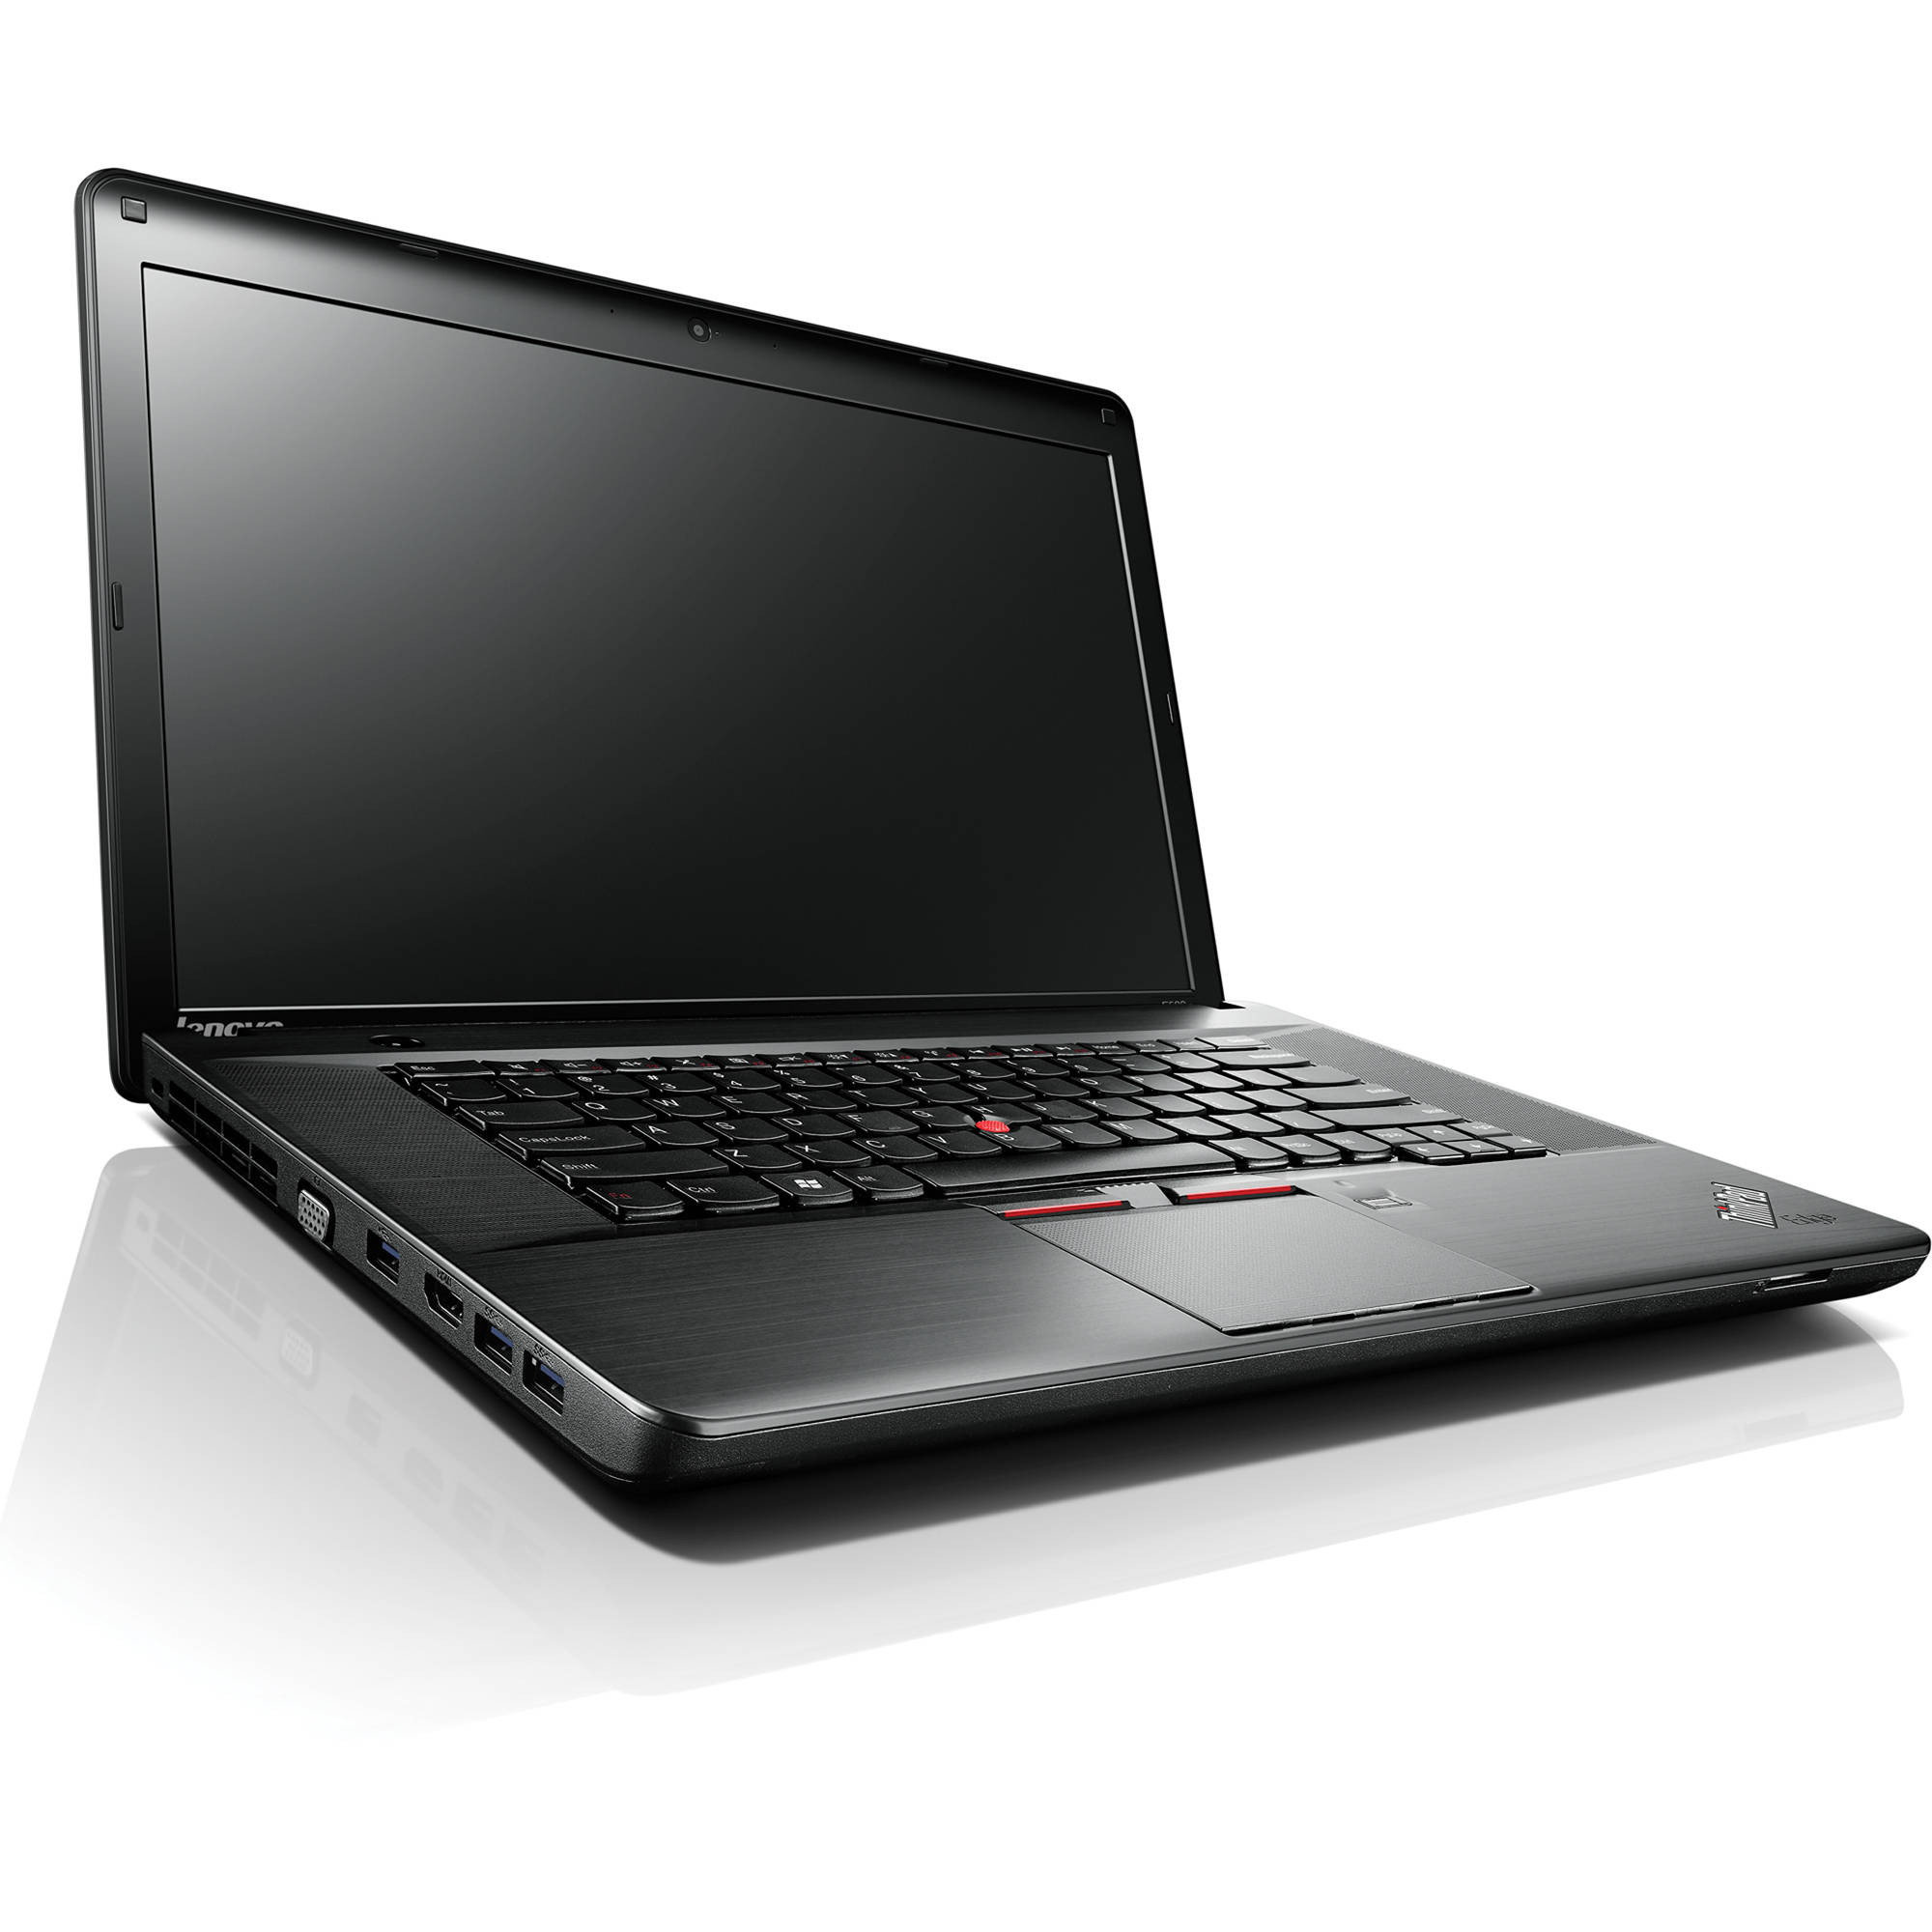 Lenovo ThinkPad Edge E530 Mobile Broadband Windows 8 X64 Driver Download